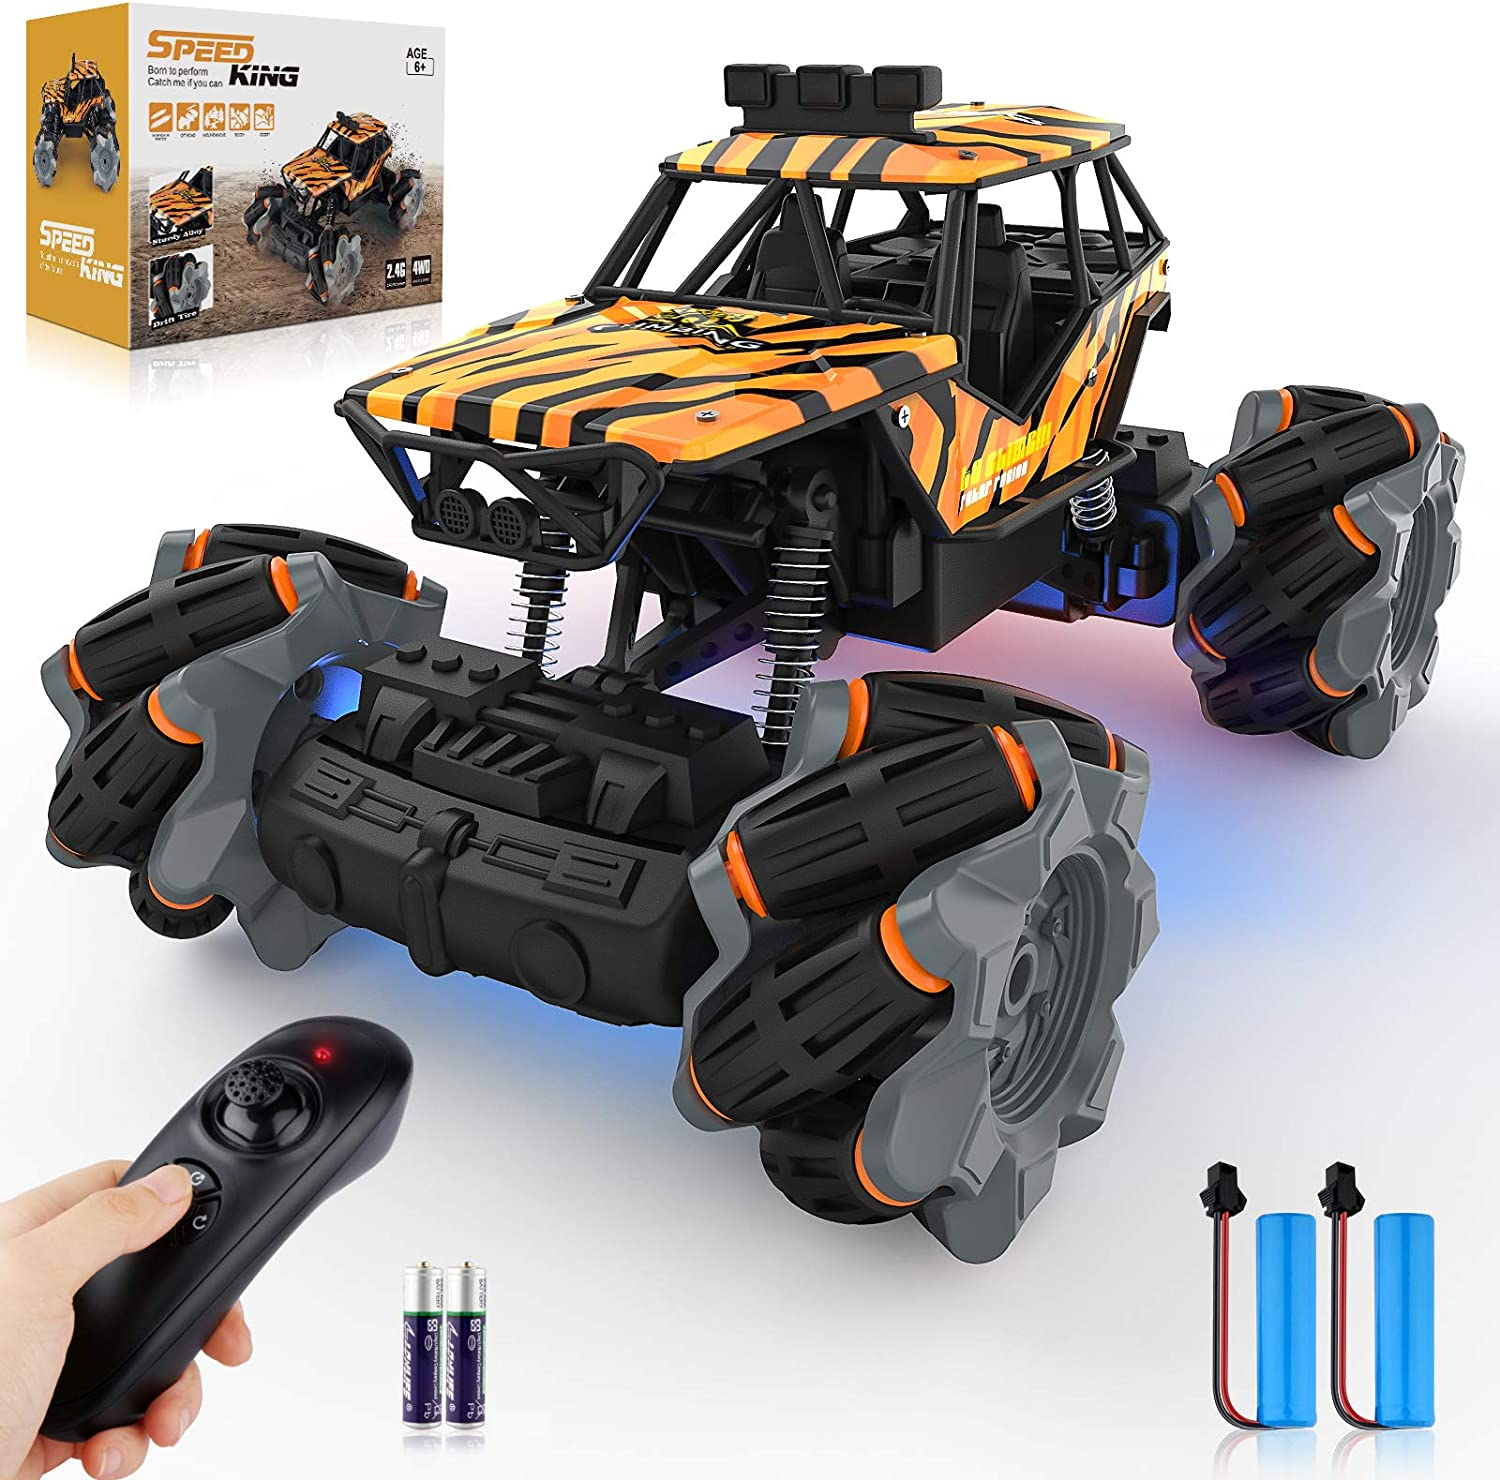 Growsly Remote Control Car, High Speed RC Car for Kids Adults 1:18 Scale 2.4 GHz 360° Spins Off Road Hobby RC Truck Racing Monster Vehicle with 4 Batteries , Drift Toy Car for Boys & Girls Gifts: Toys & Games